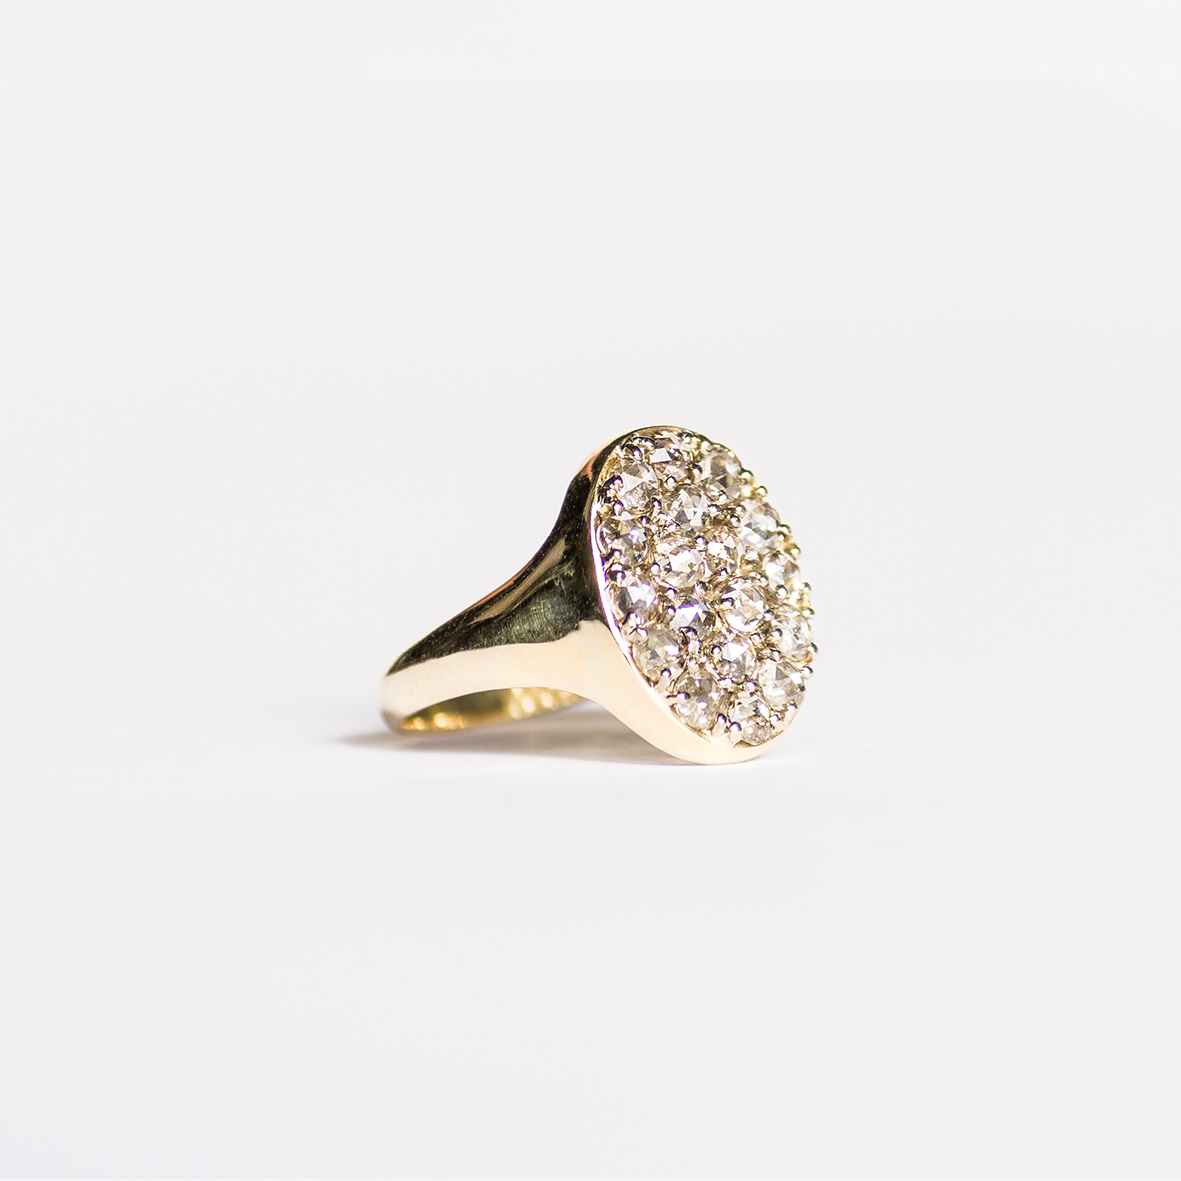 2. OONA_lotus_ficha2_signet diamond ring